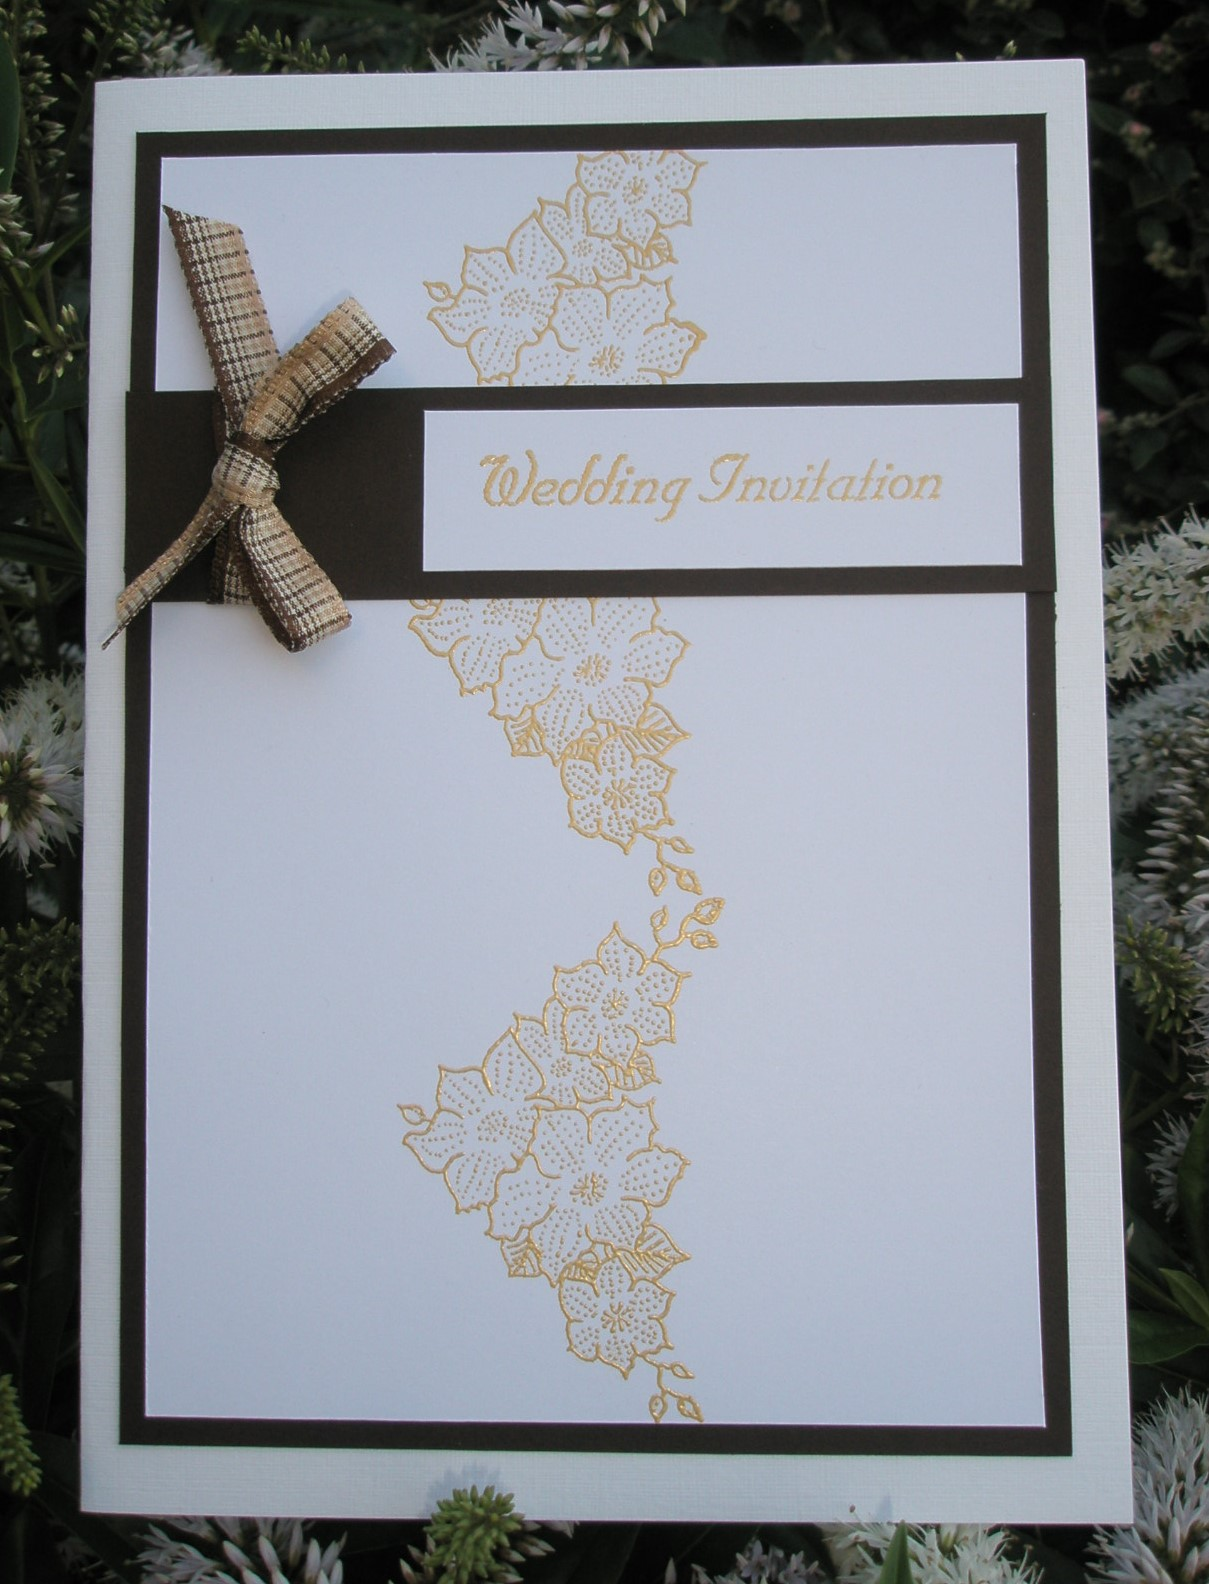 Oak House Studio Make Your Own Wedding Invitations Using The Clematis Corner